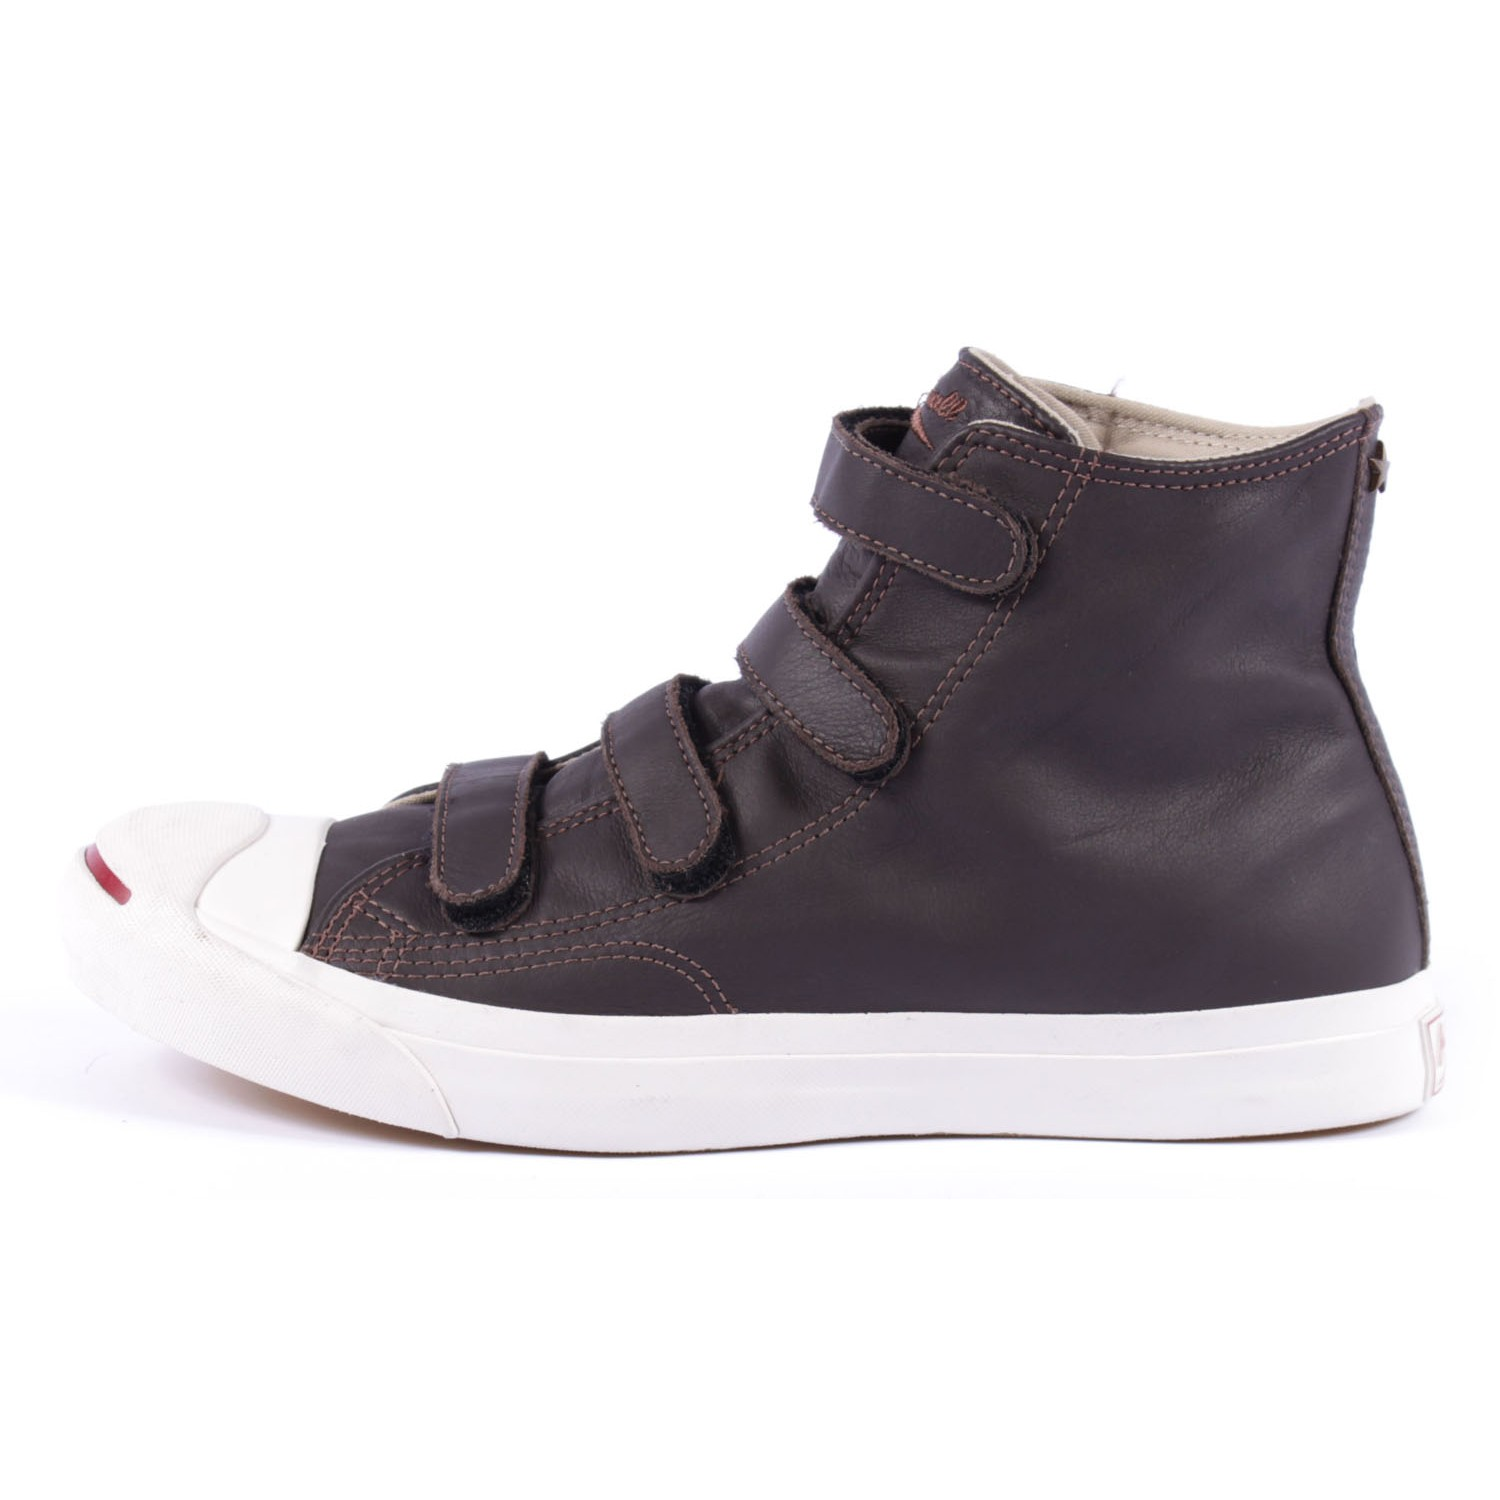 42d10118f17f Unofficial Jack Purcell  Jack Purcell Hi Velcro - Brown Leather